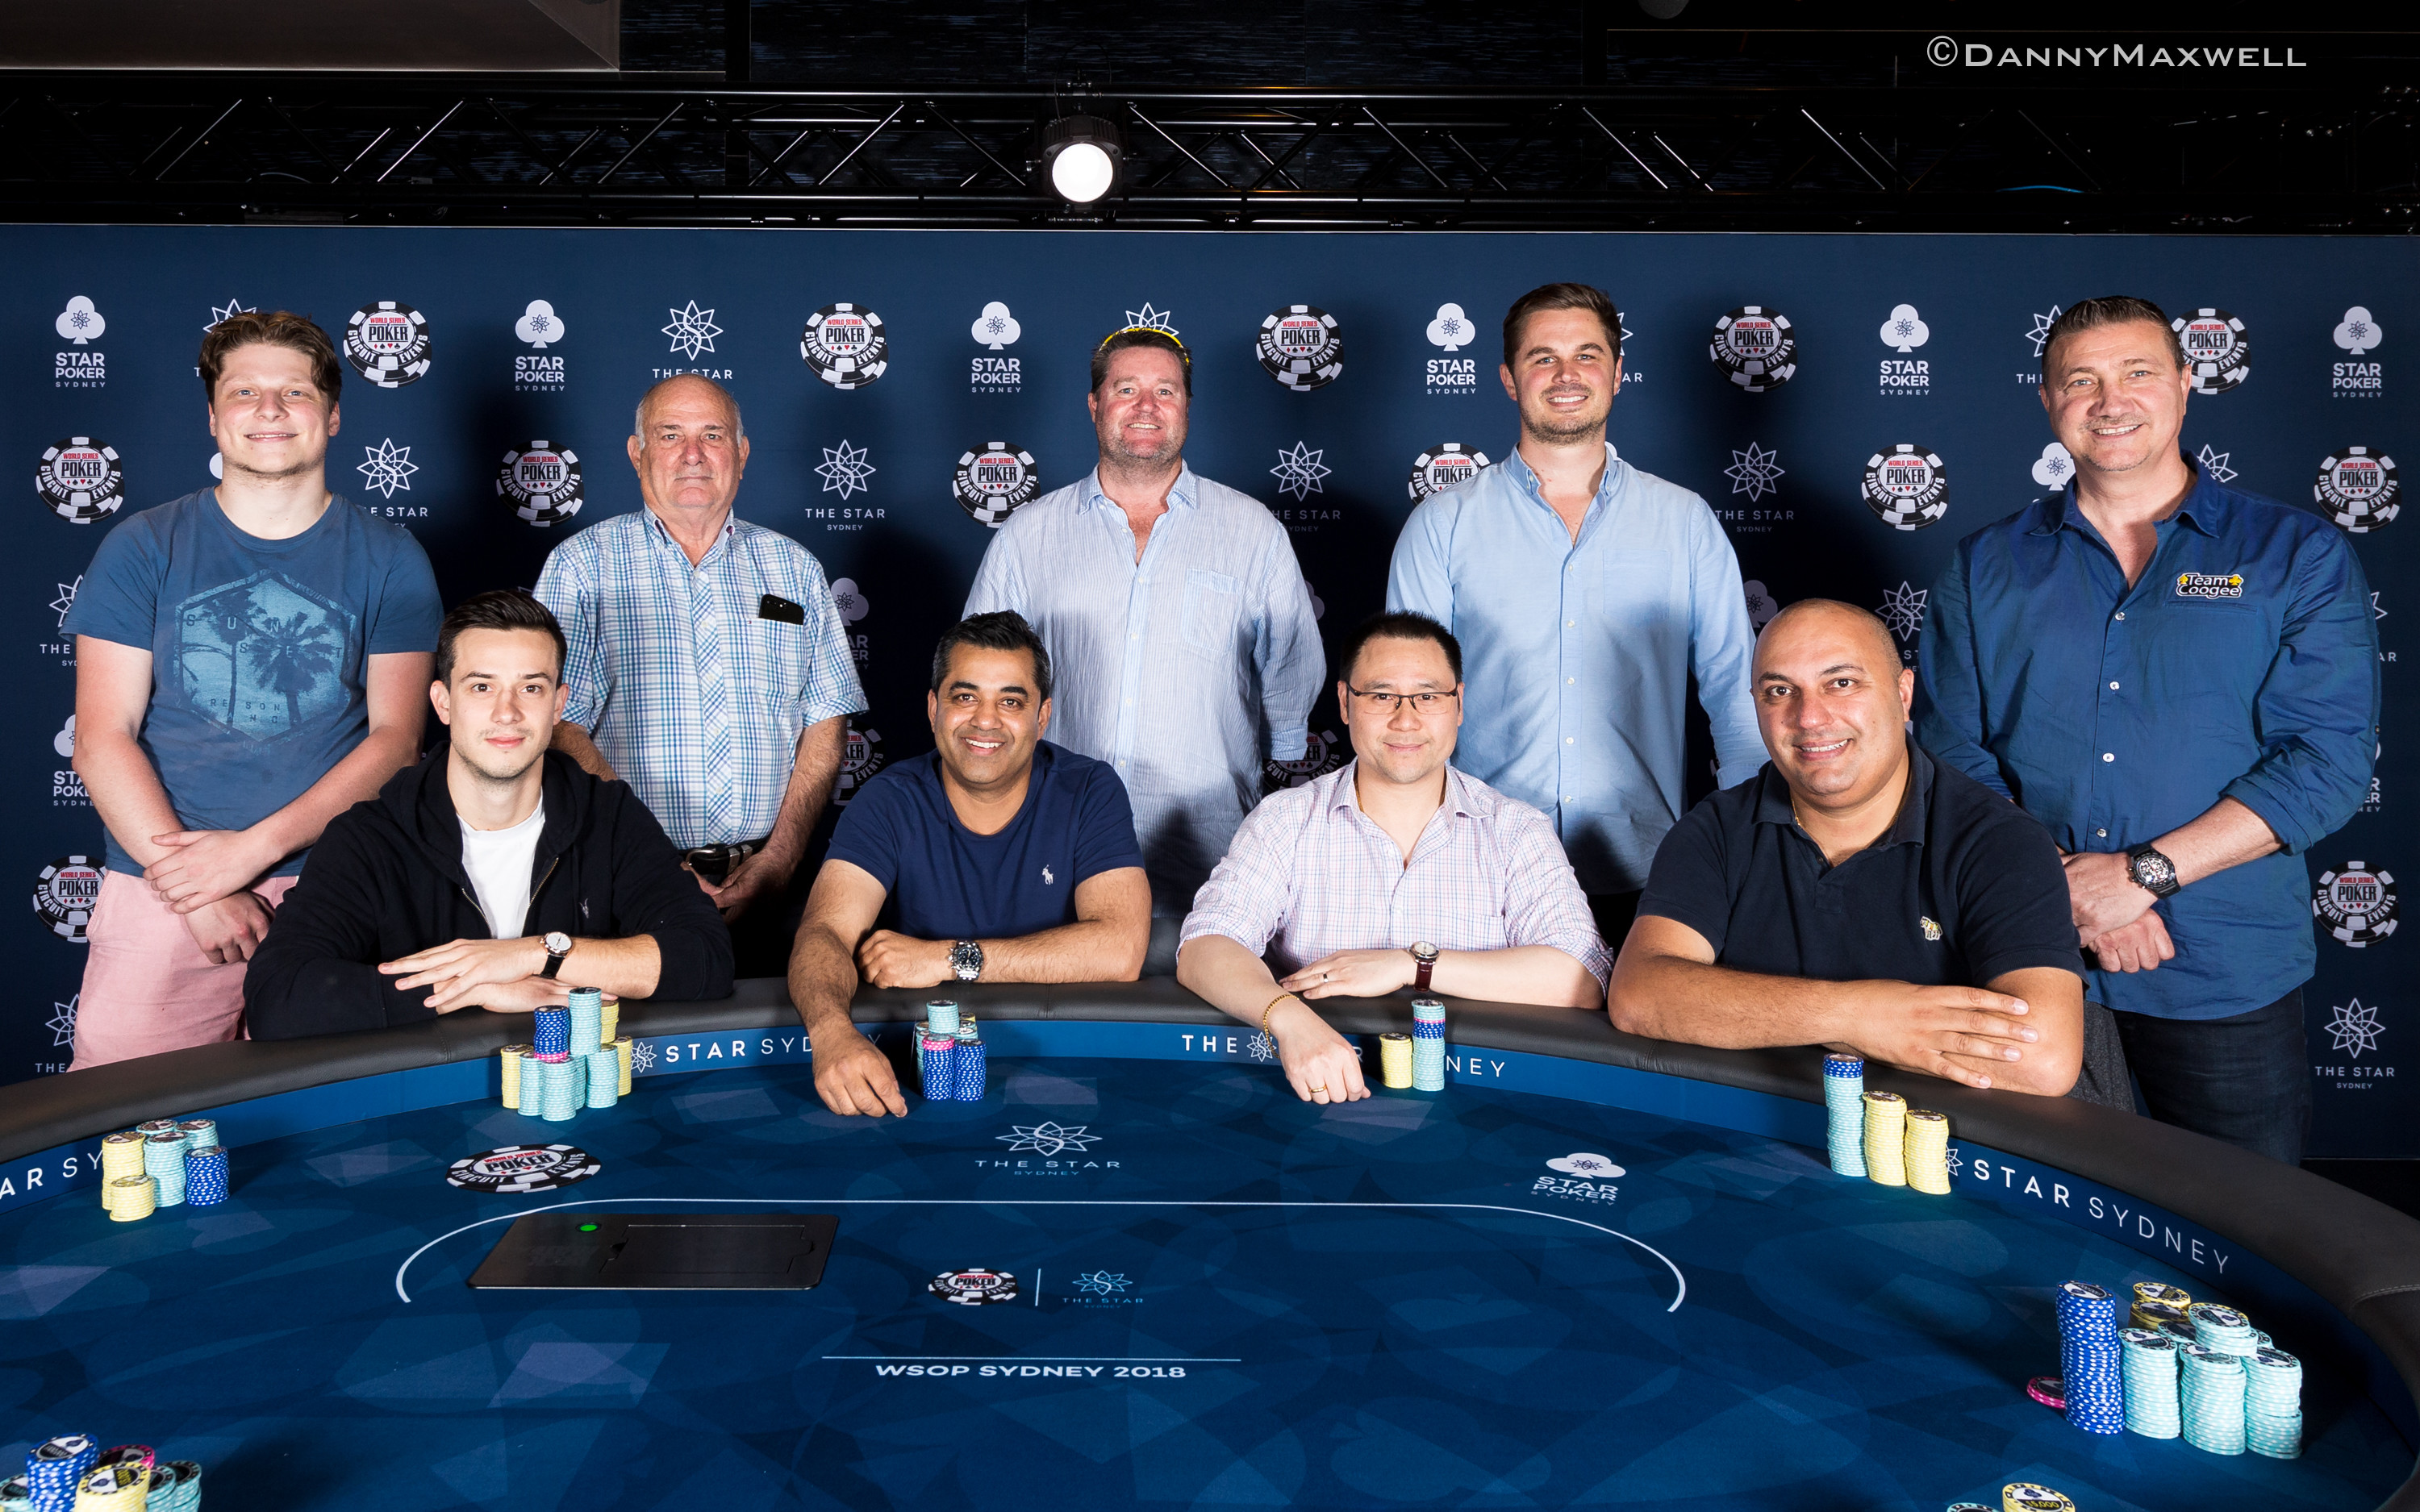 2018 WSOP International Circuit The Star Sydney $2,200 Main Event Final Table